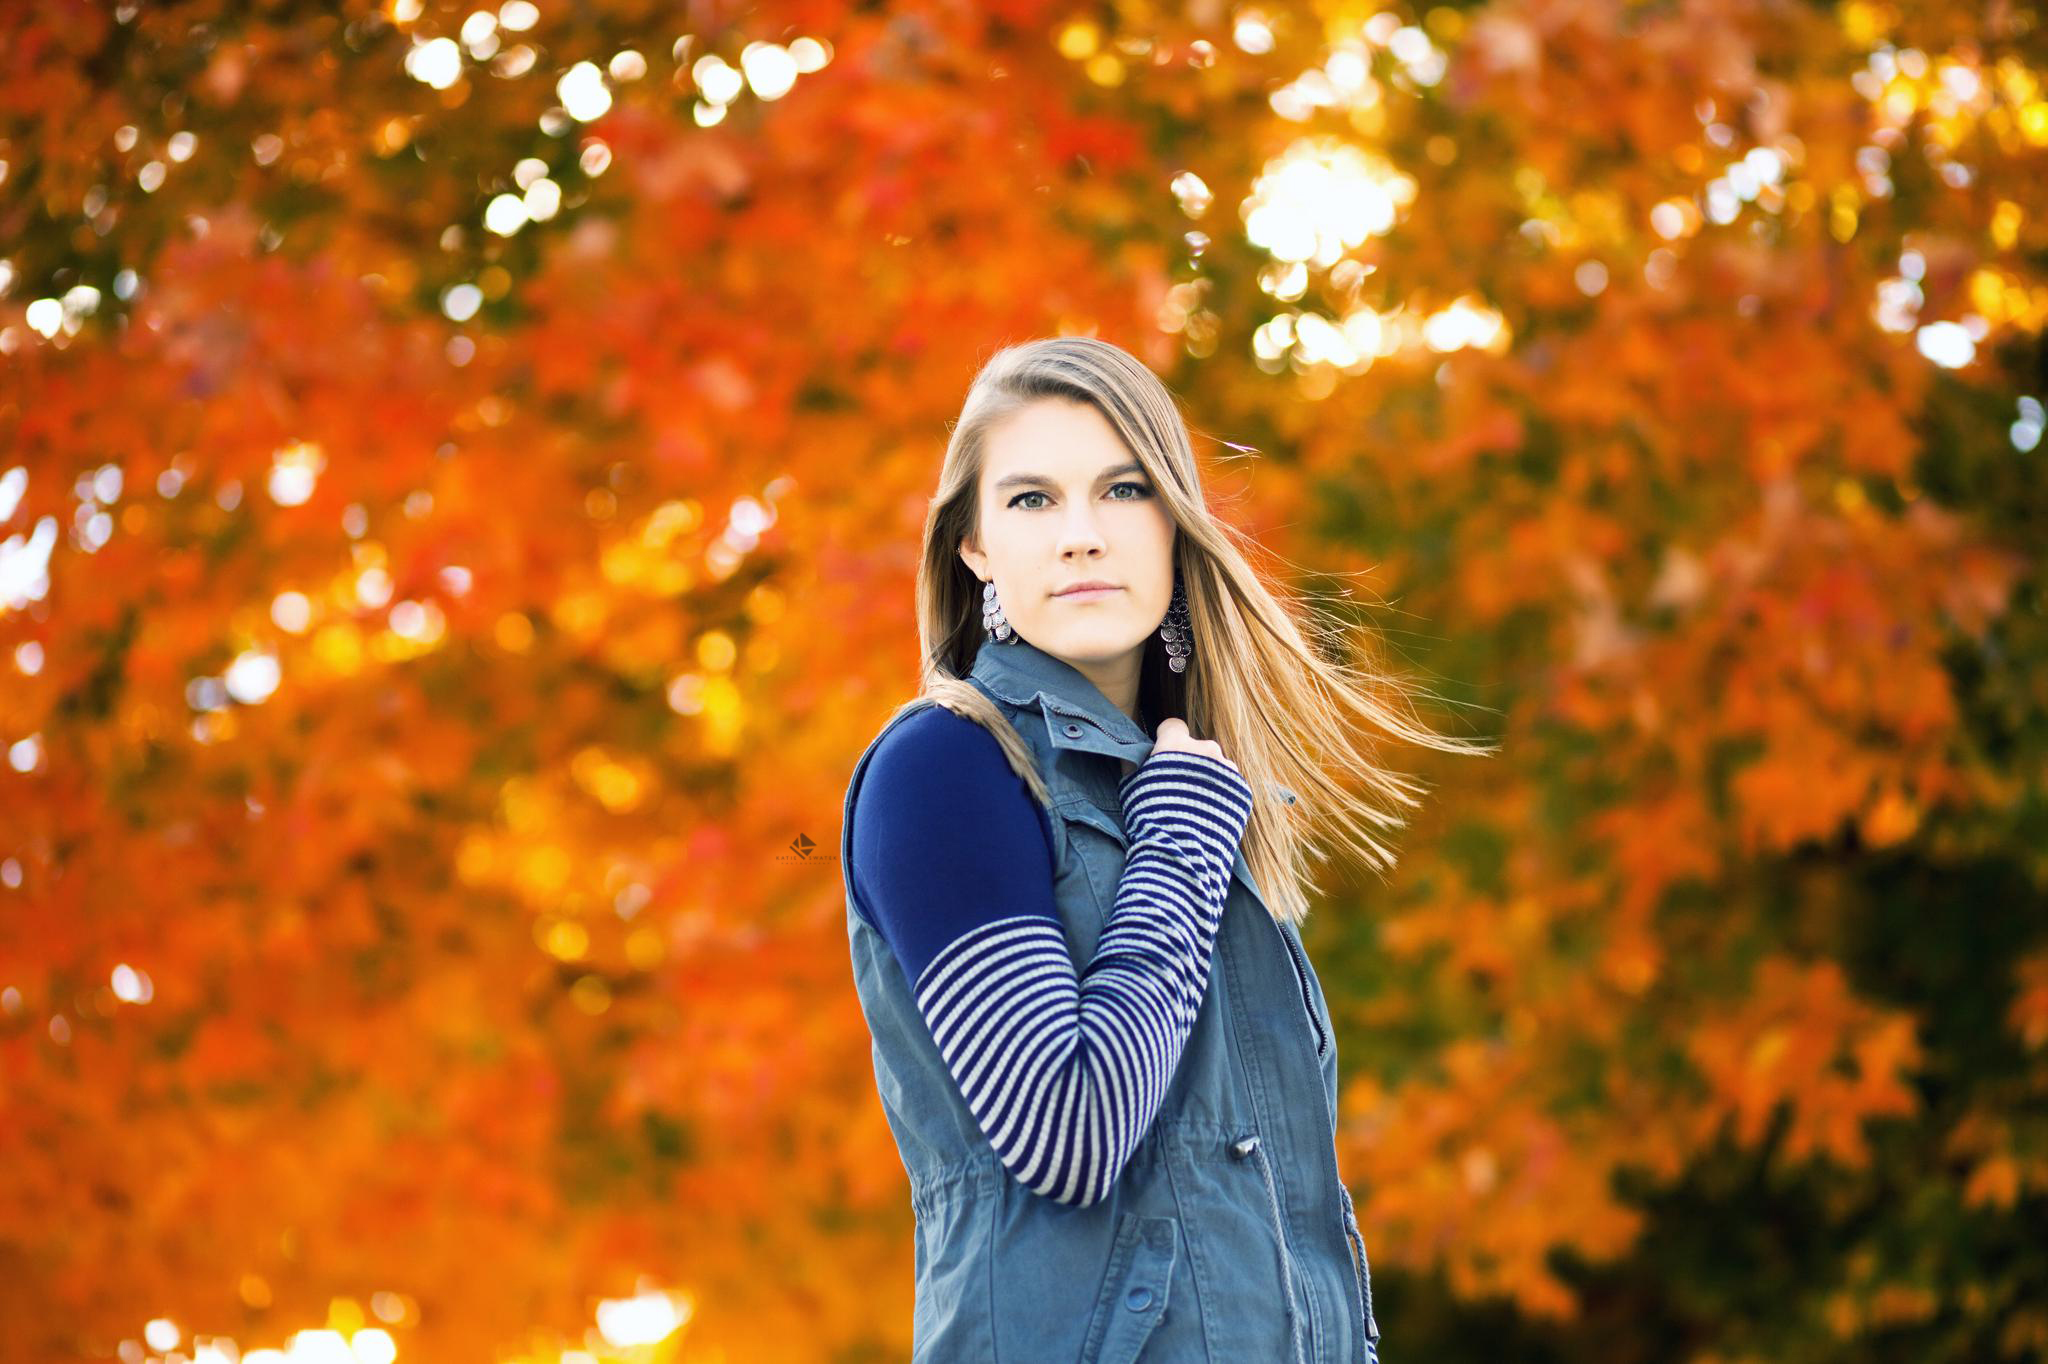 blonde senior girl in a blue striped shirt and blue vest standing in front of fall foliage